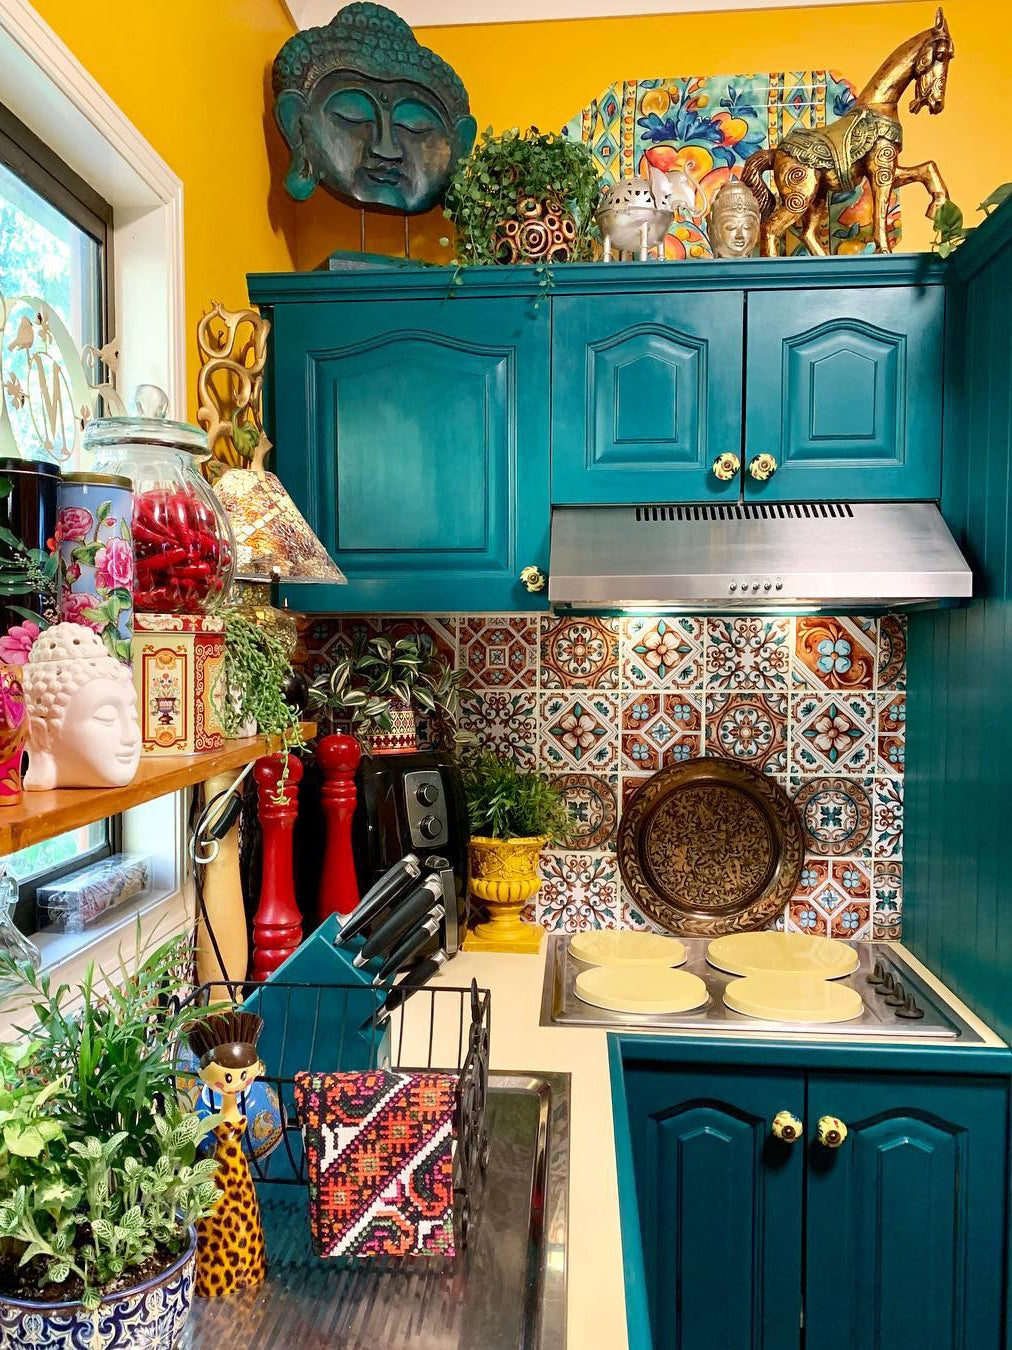 teal kitchen cabinets and colorful backdrop